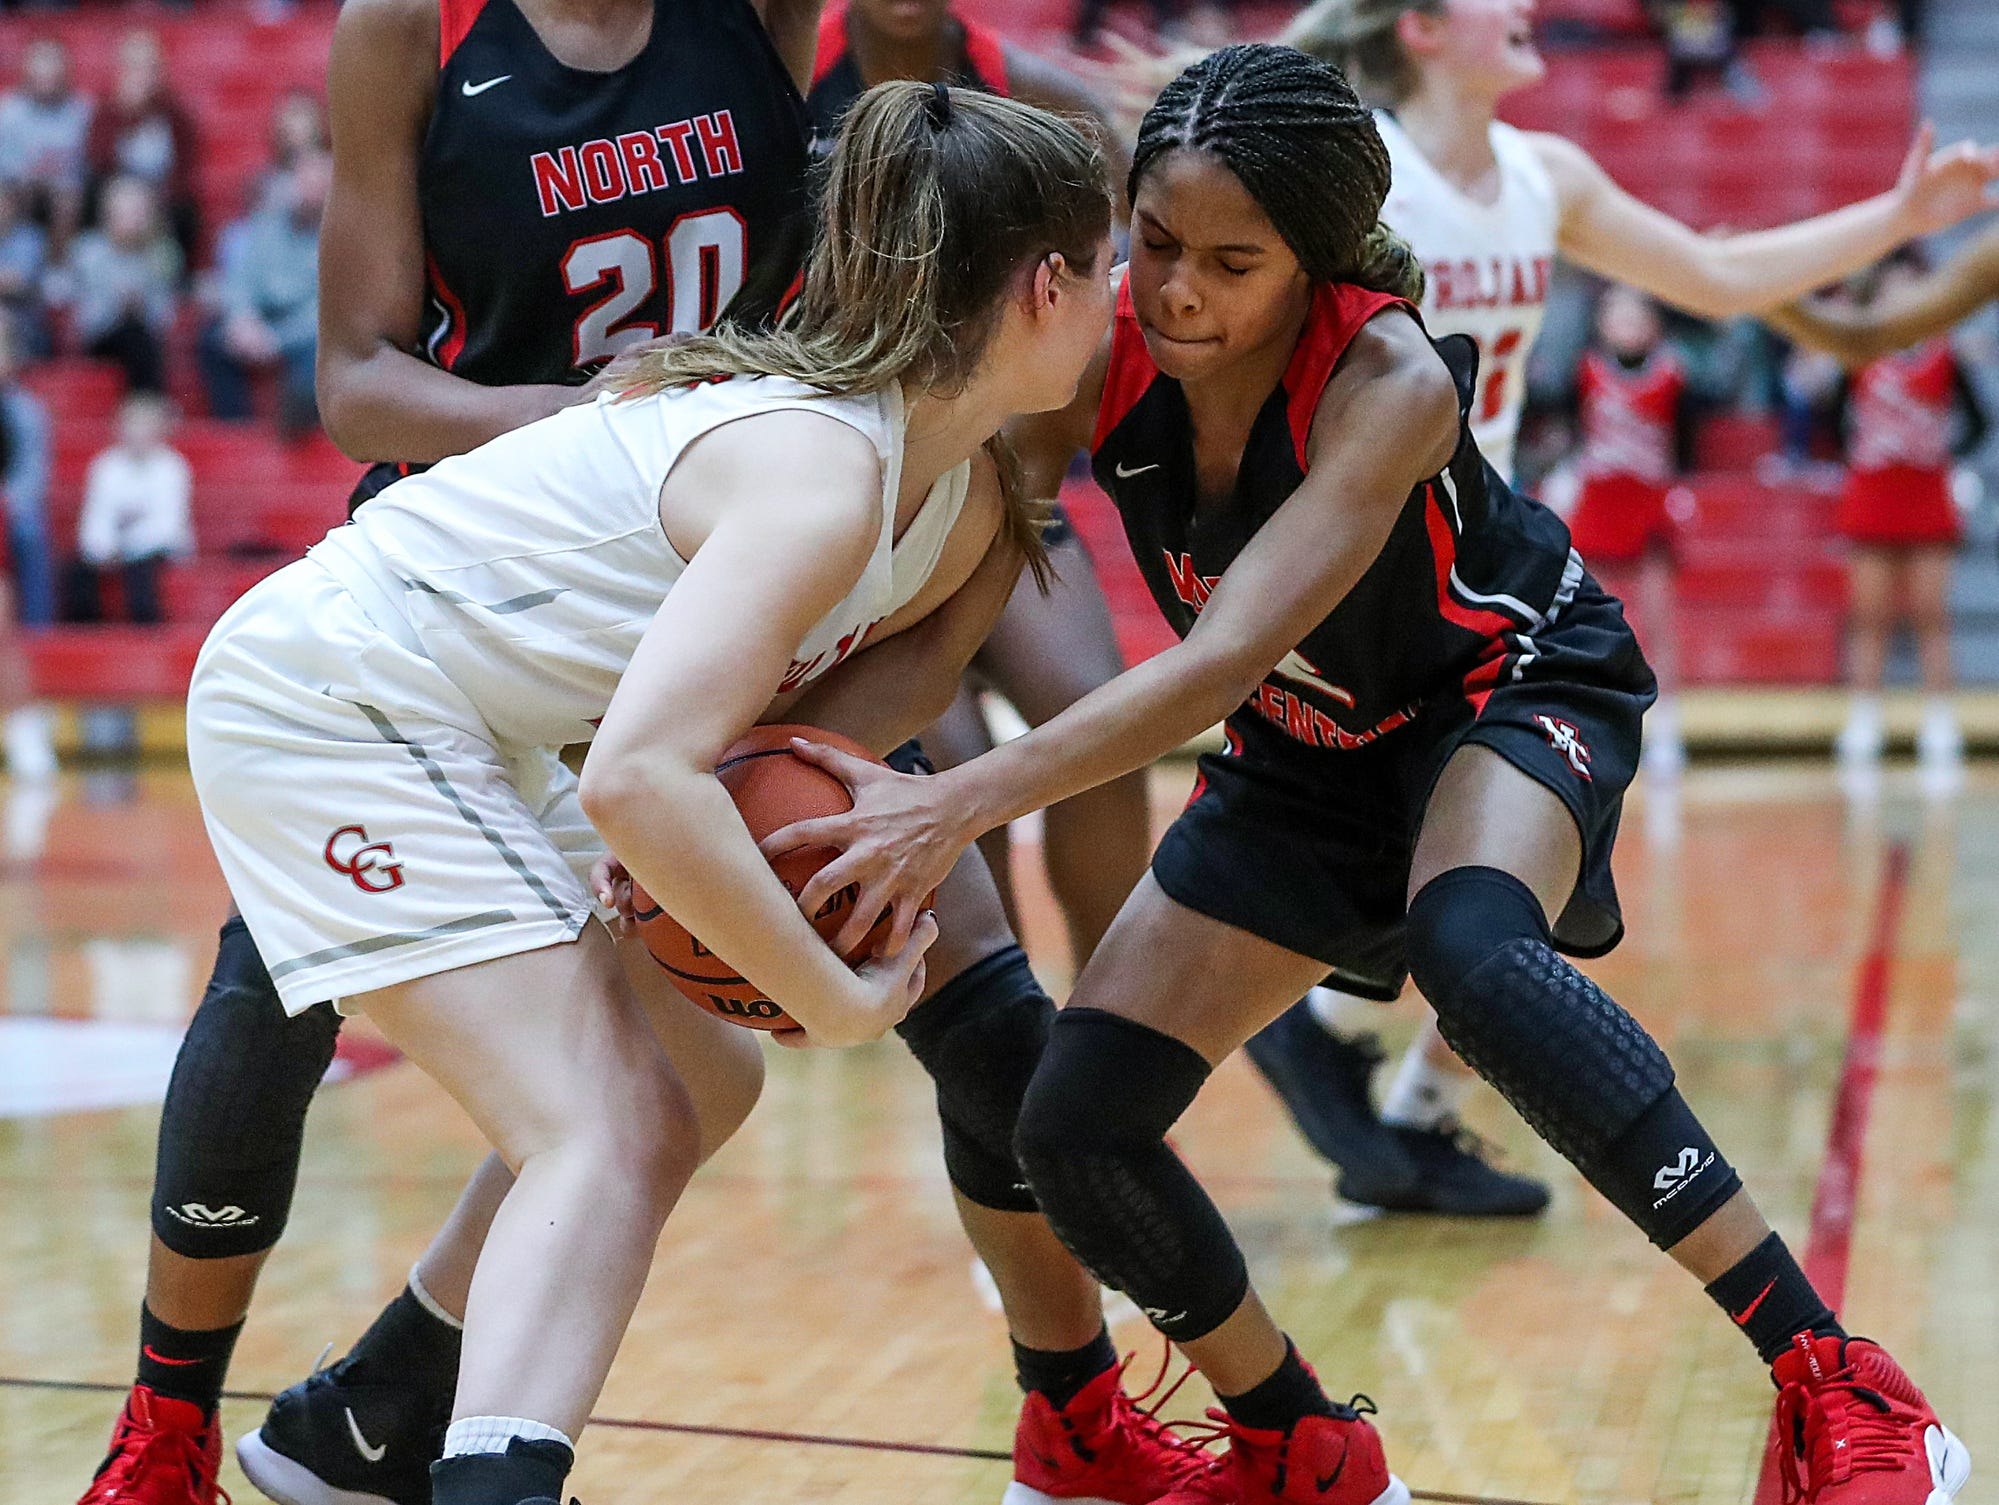 Center Grove Trojans Claire Rake (12) and North Central Panthers guard Tanyuel Welch (2) fight for the ball, in a play that ended with a foul on Welch, late in the fourth quarter of the game at Center Grove High School in Greenwood, Ind., Thursday, Jan. 10, 2019. Center Grove defeated North Central, 51-44.